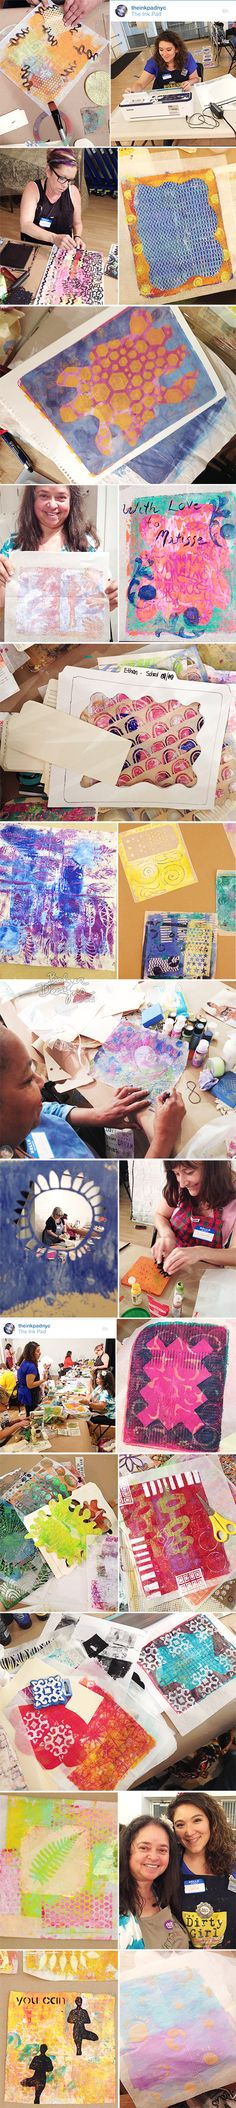 """from the Balzer Designs Blog: Gelli + Deli at The Ink Pad ~~""""The Ink Pad brought their ScanNCut to class and I showed students how quick and easy it is to cut stencils based on drawings or magazine images.  By the by, if you order a ScanNCut from The Ink Pad, they offer you 15% off all ScanNCut accessories forever. """""""